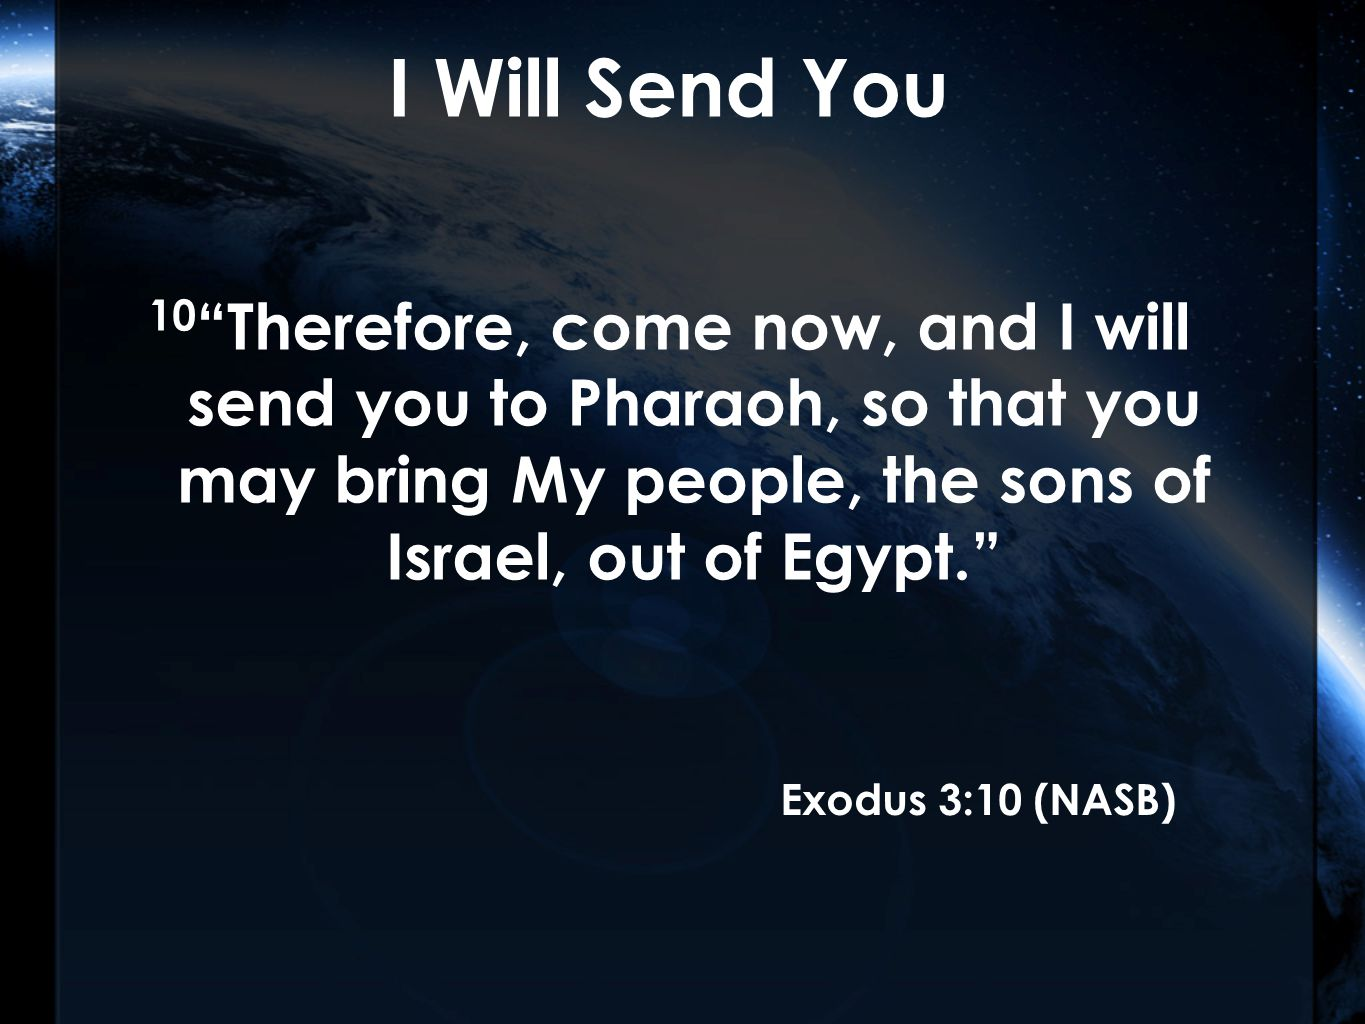 I Will Send You 10 Therefore, come now, and I will send you to Pharaoh, so that you may bring My people, the sons of Israel, out of Egypt. Exodus 3:10 (NASB)